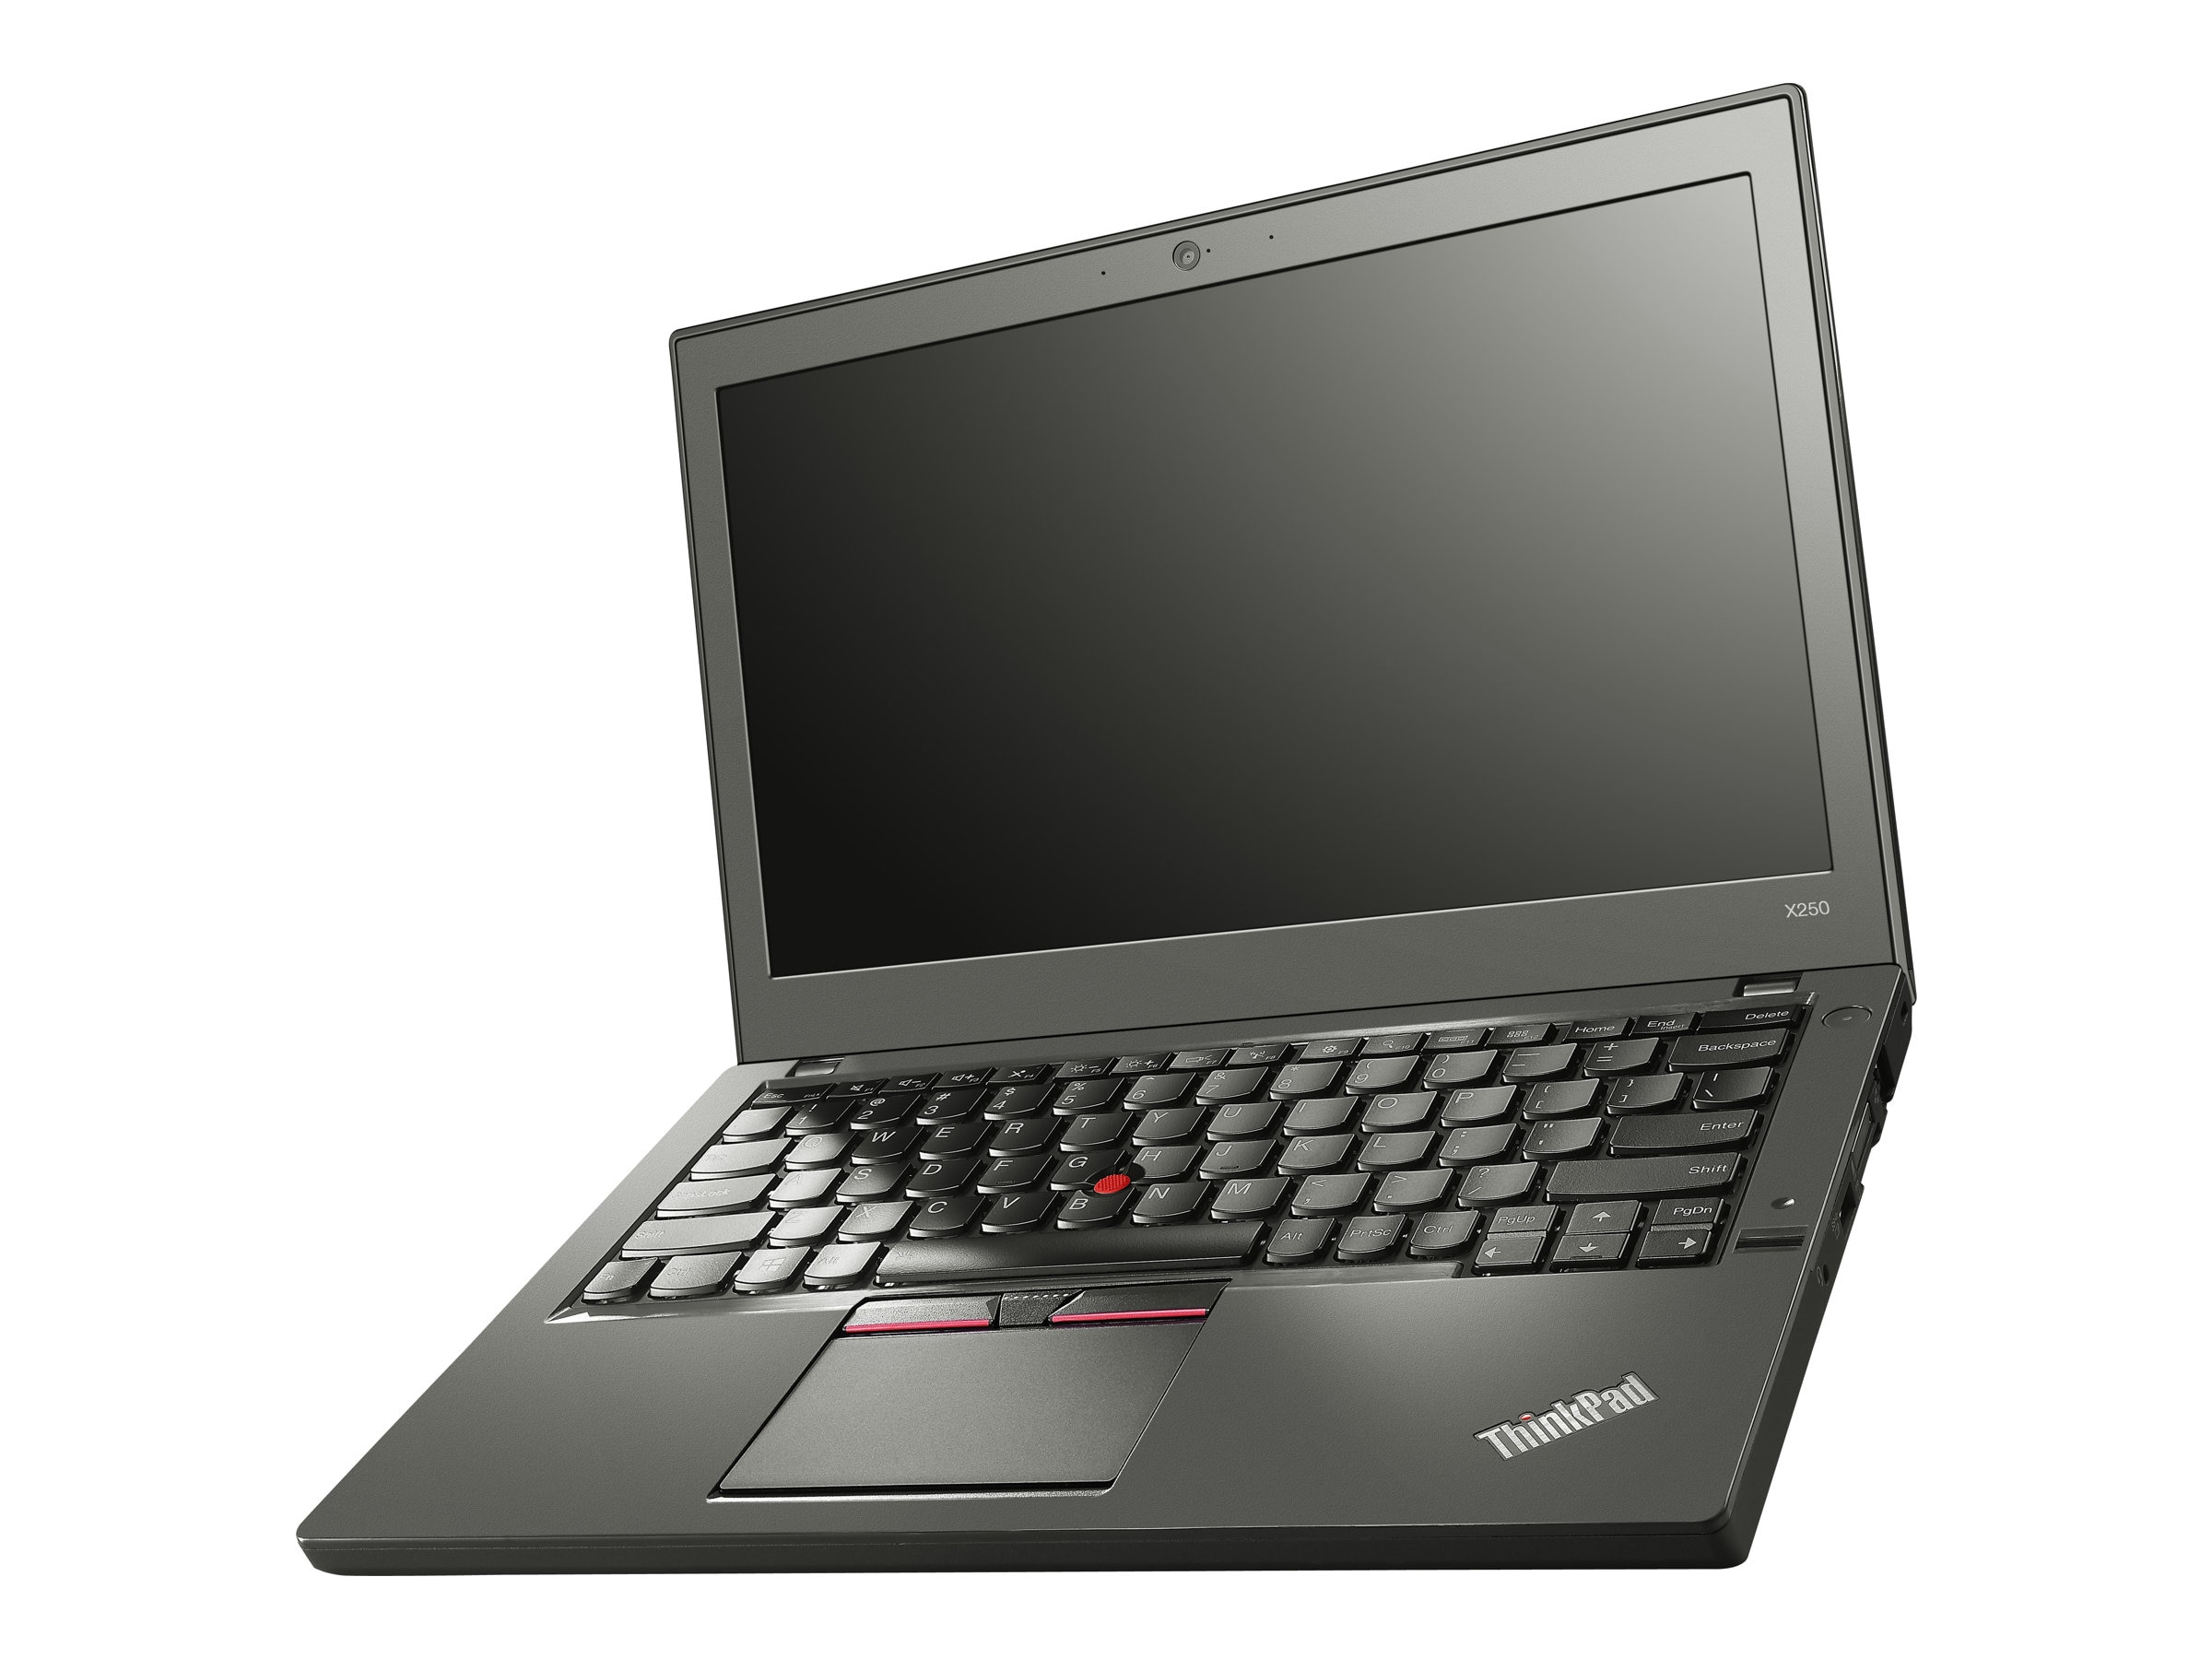 Lenovo TopSeller ThinkPad X250 2.3GHz Core i5 12.5in display, 20CM002YUS, 18451643, Notebooks